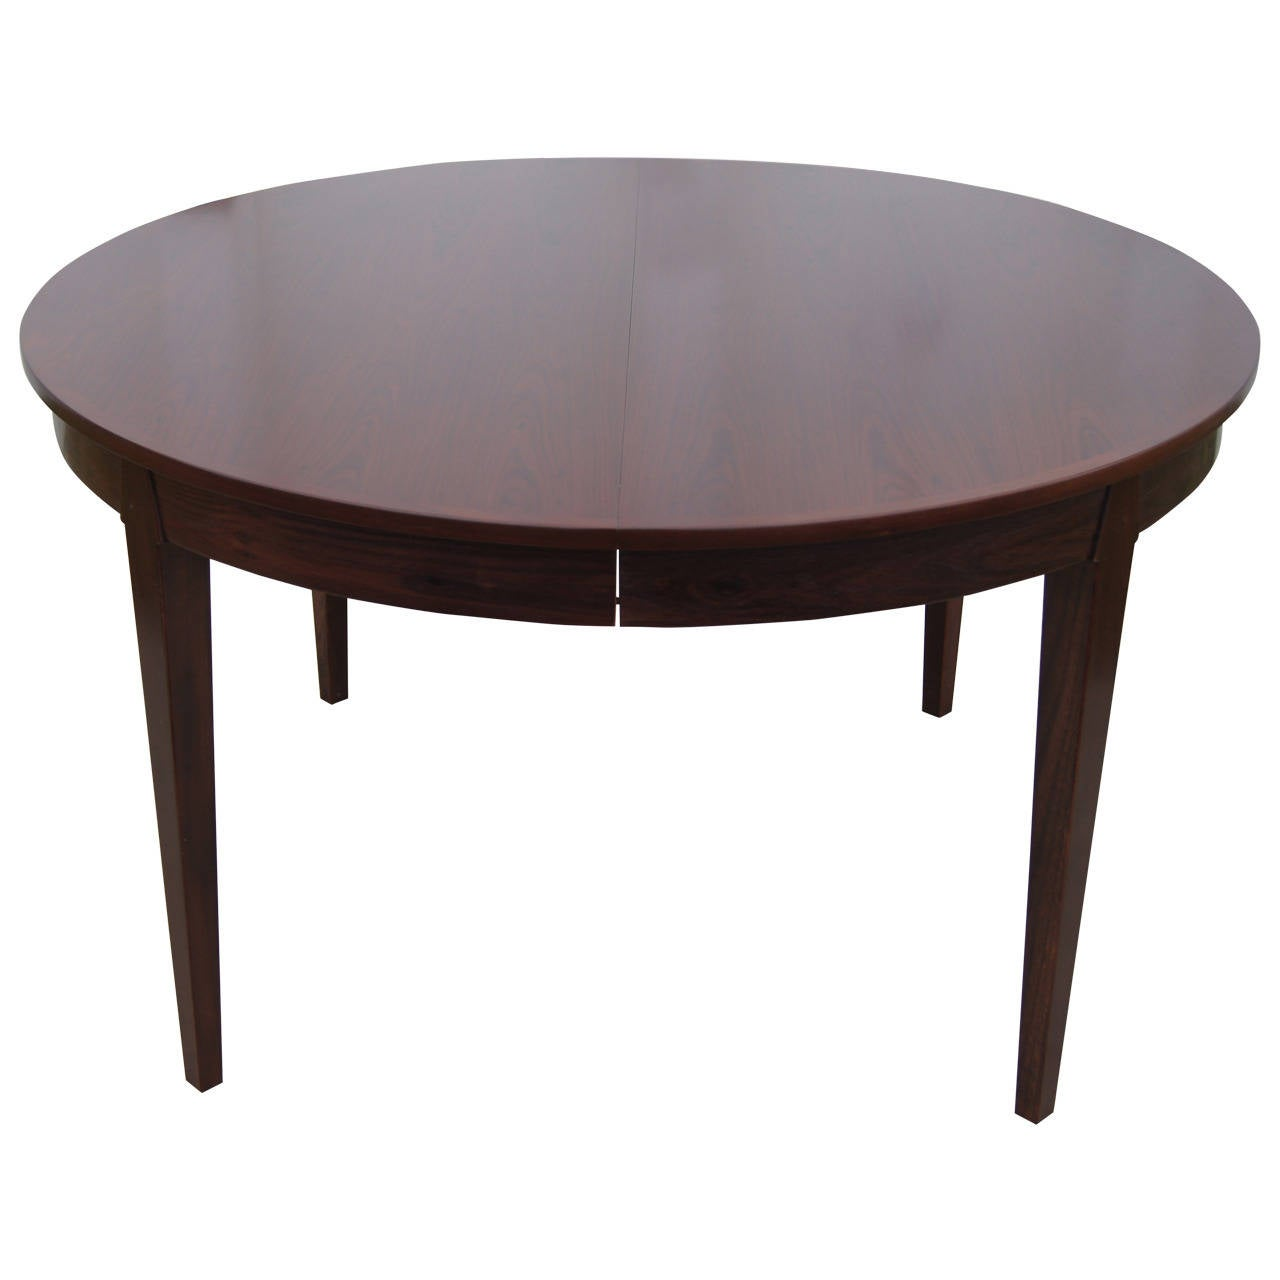 Rosewood Dining Table by Arne Vodder at 1stdibs : 1553602l from www.1stdibs.com size 1280 x 1280 jpeg 44kB